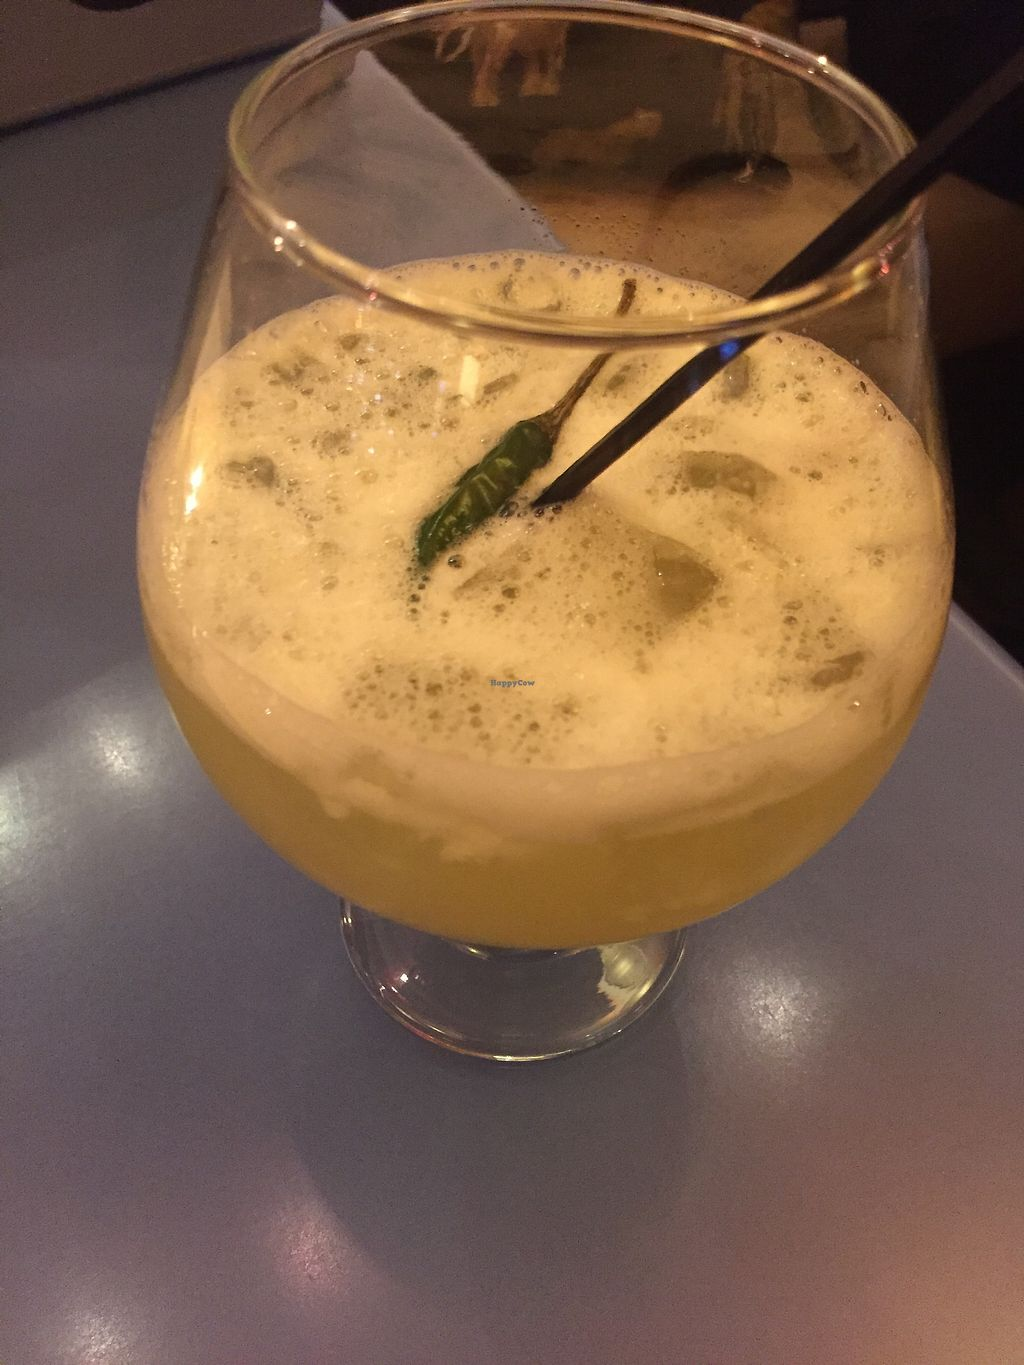 """Photo of Mia Tapas Bar & Restaurant  by <a href=""""/members/profile/KaitlynnGill"""">KaitlynnGill</a> <br/>Spicy repasado drink <br/> November 25, 2017  - <a href='/contact/abuse/image/105870/328871'>Report</a>"""